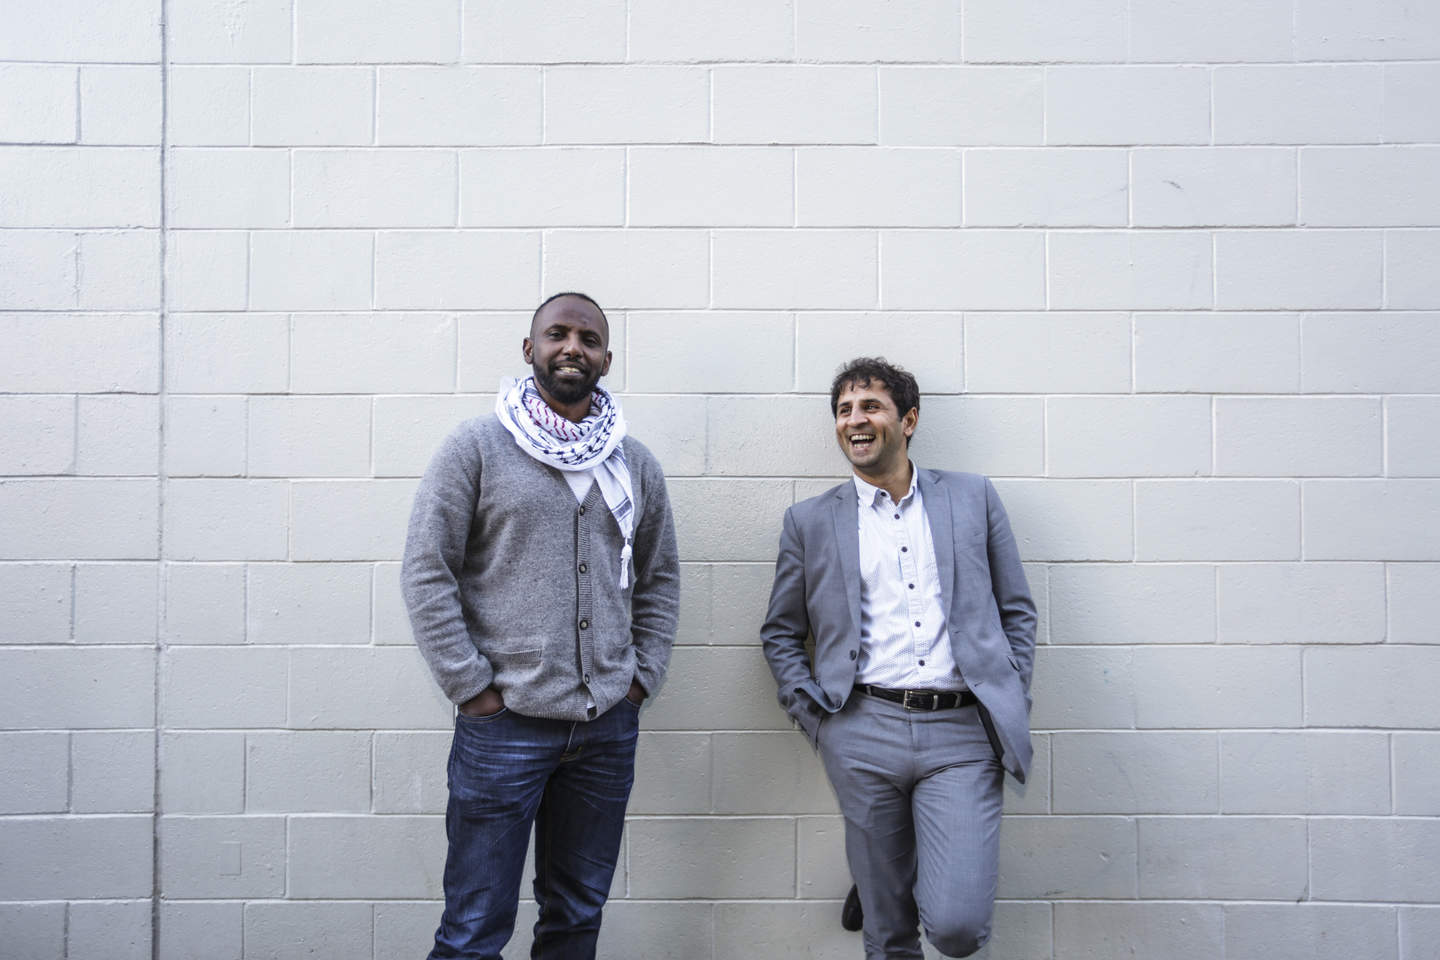 Ibriham Omer, left, and Ali Mazraeh have both lived in New Zealand for about a decade and are now members of the ChangeMakers Forum - an advocacy group for refugees